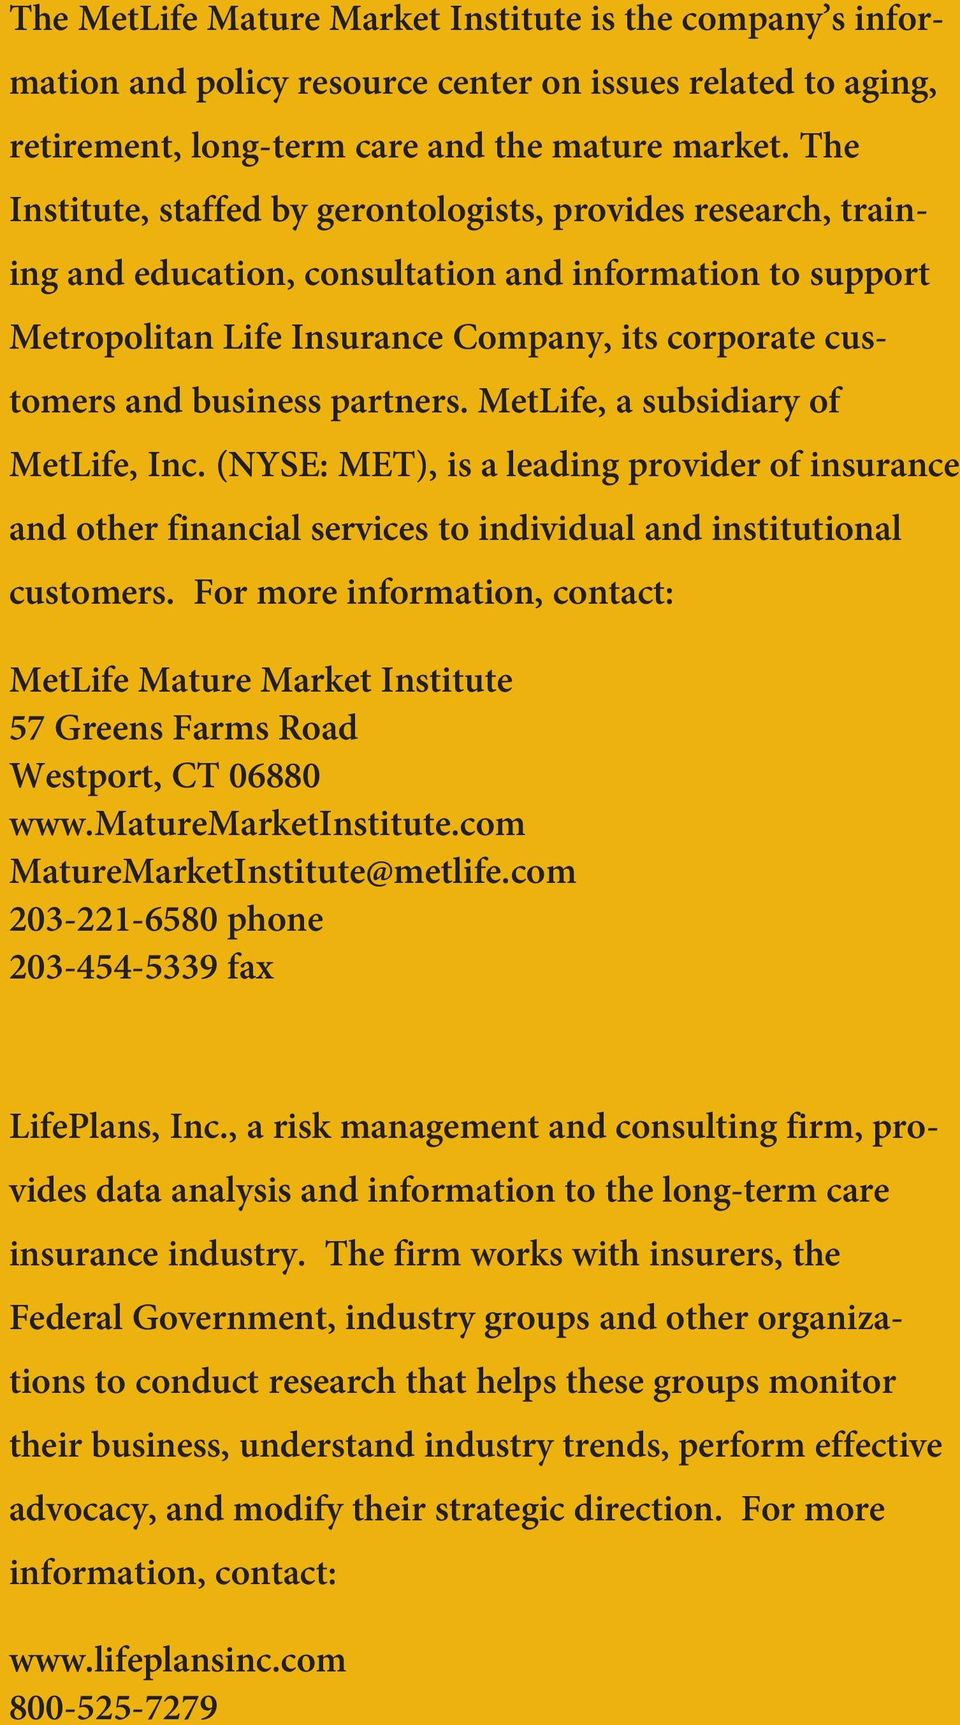 partners. MetLife, a subsidiary of MetLife, Inc. (NYSE: MET), is a leading provider of insurance and other financial services to individual and institutional customers.